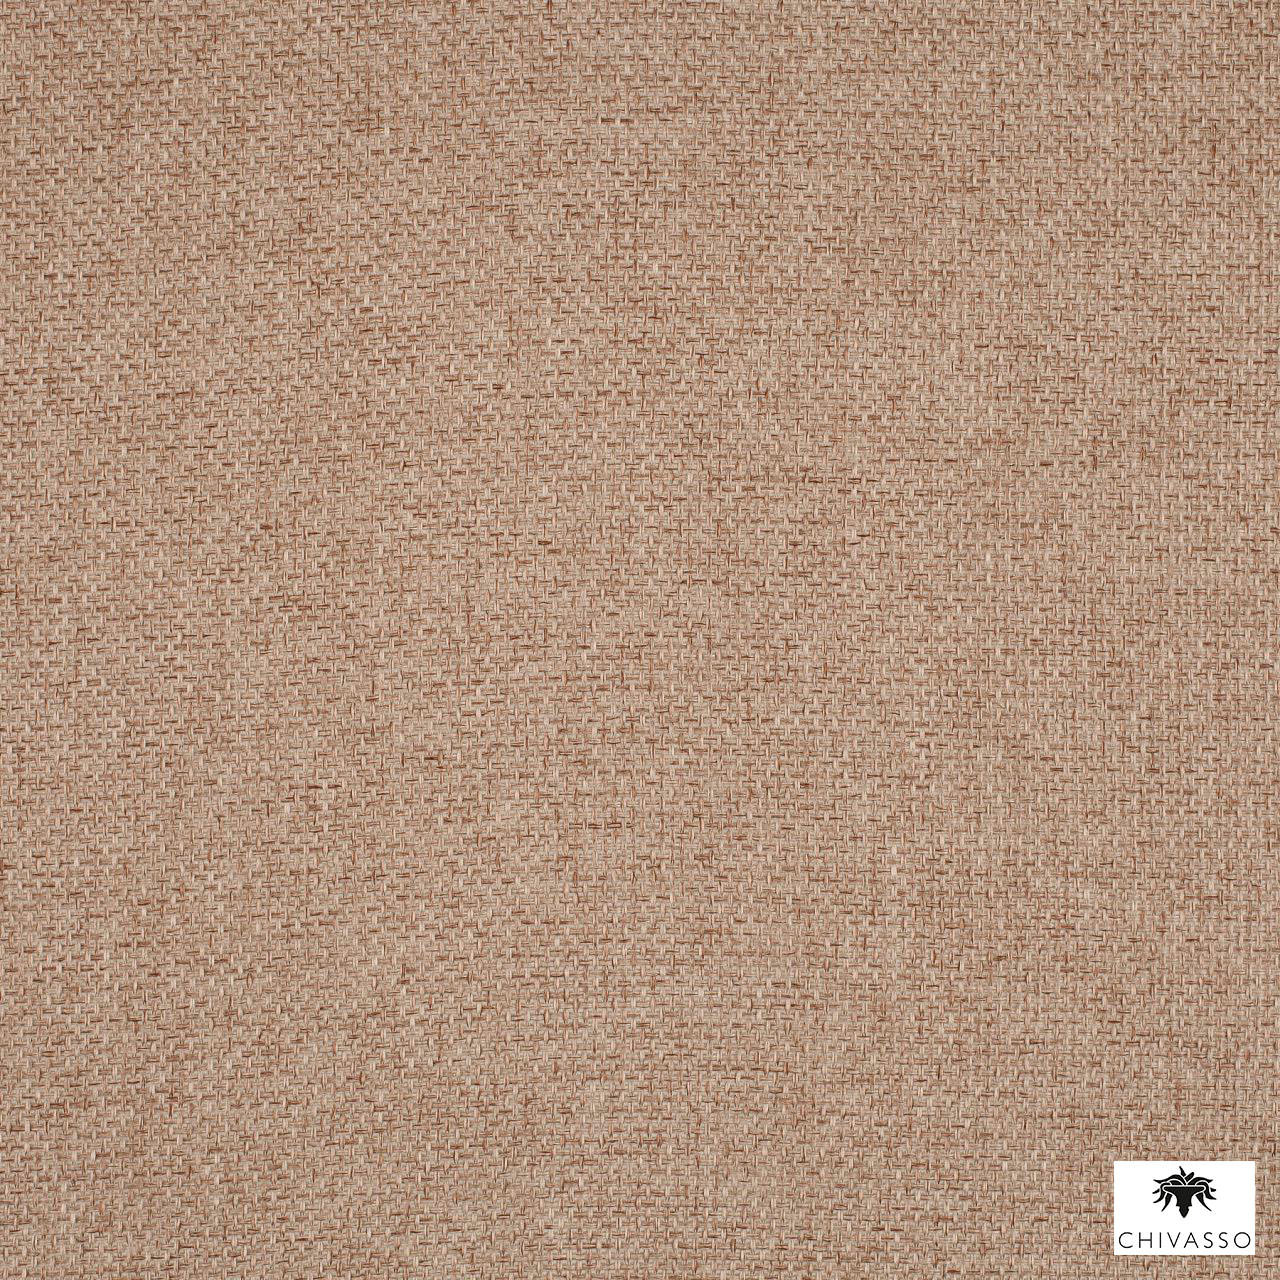 Chivasso - Twinkle - Ch2740-020  | Curtain Fabric - Brown, Plain, Synthetic, Domestic Use, Railroaded, Wide Width